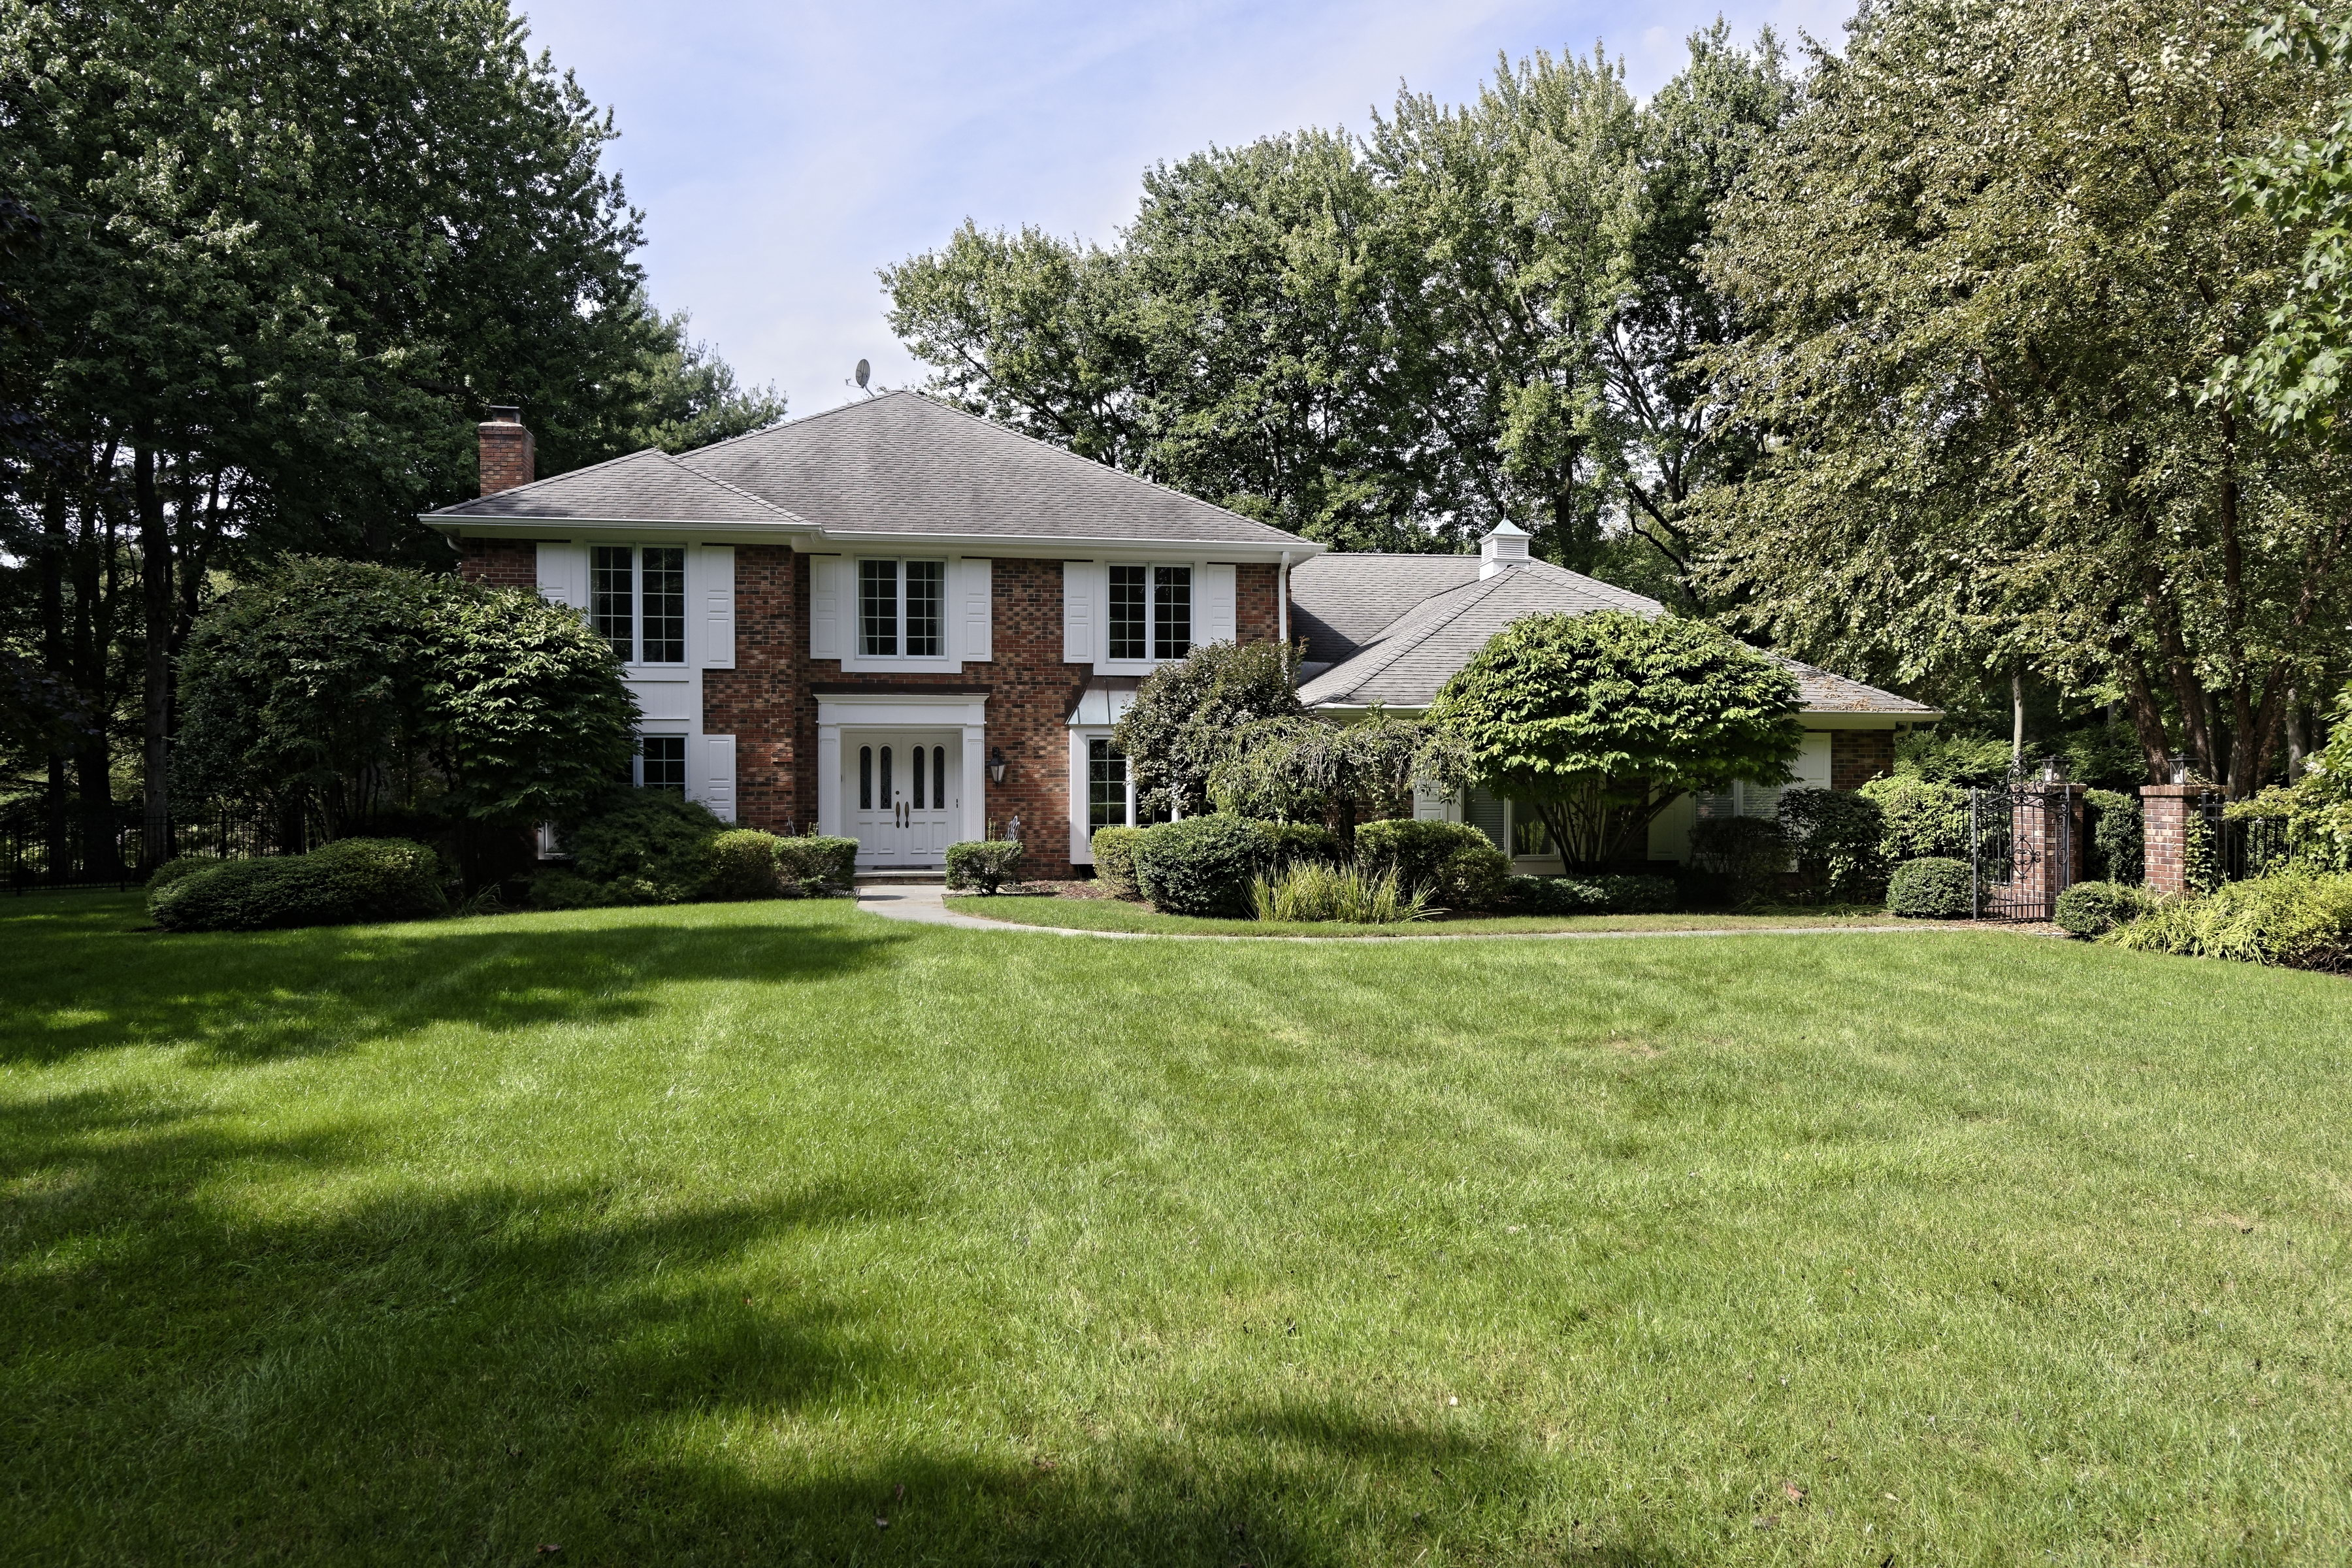 Single Family Home for Sale at Stunning Brick Residence 5069 Congress Street Fairfield, Connecticut, 06824 United States